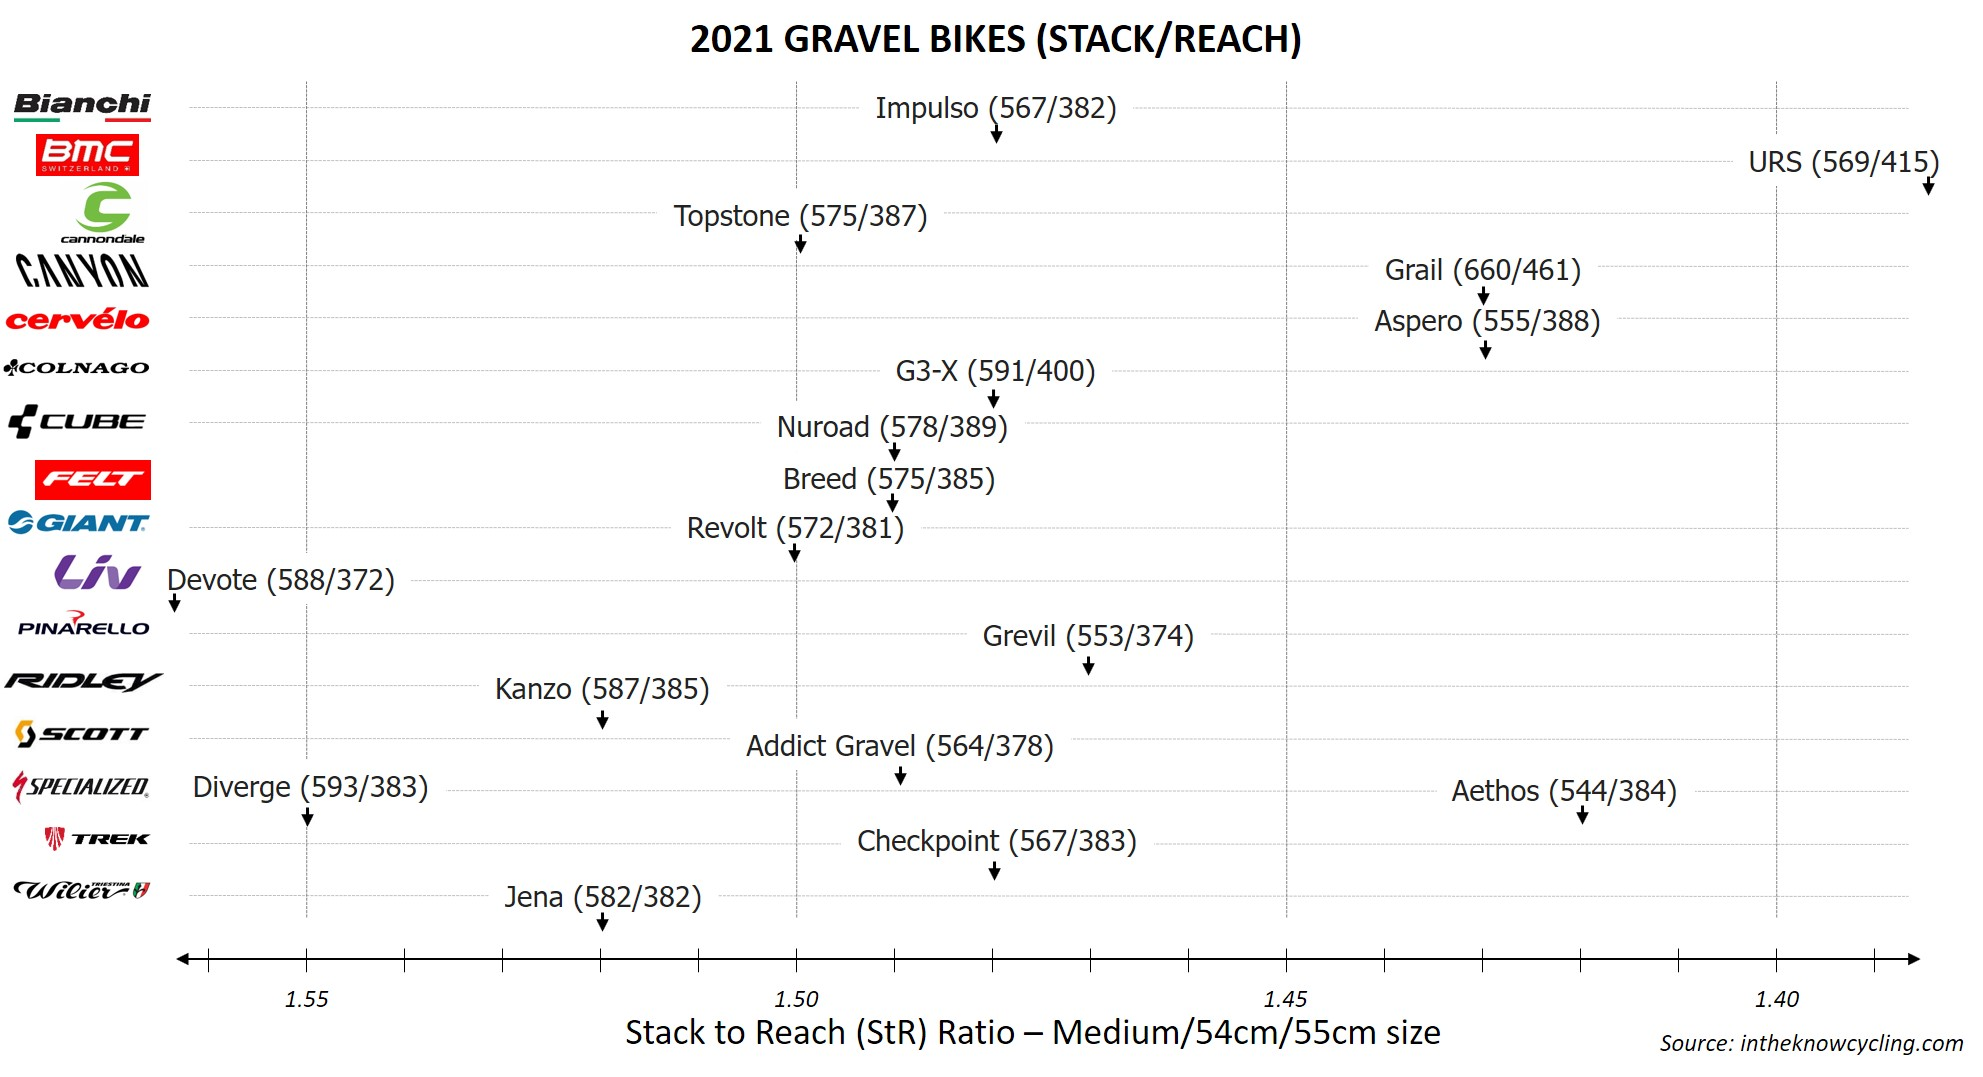 2021 Gravel Bike Stack to Reach ratio